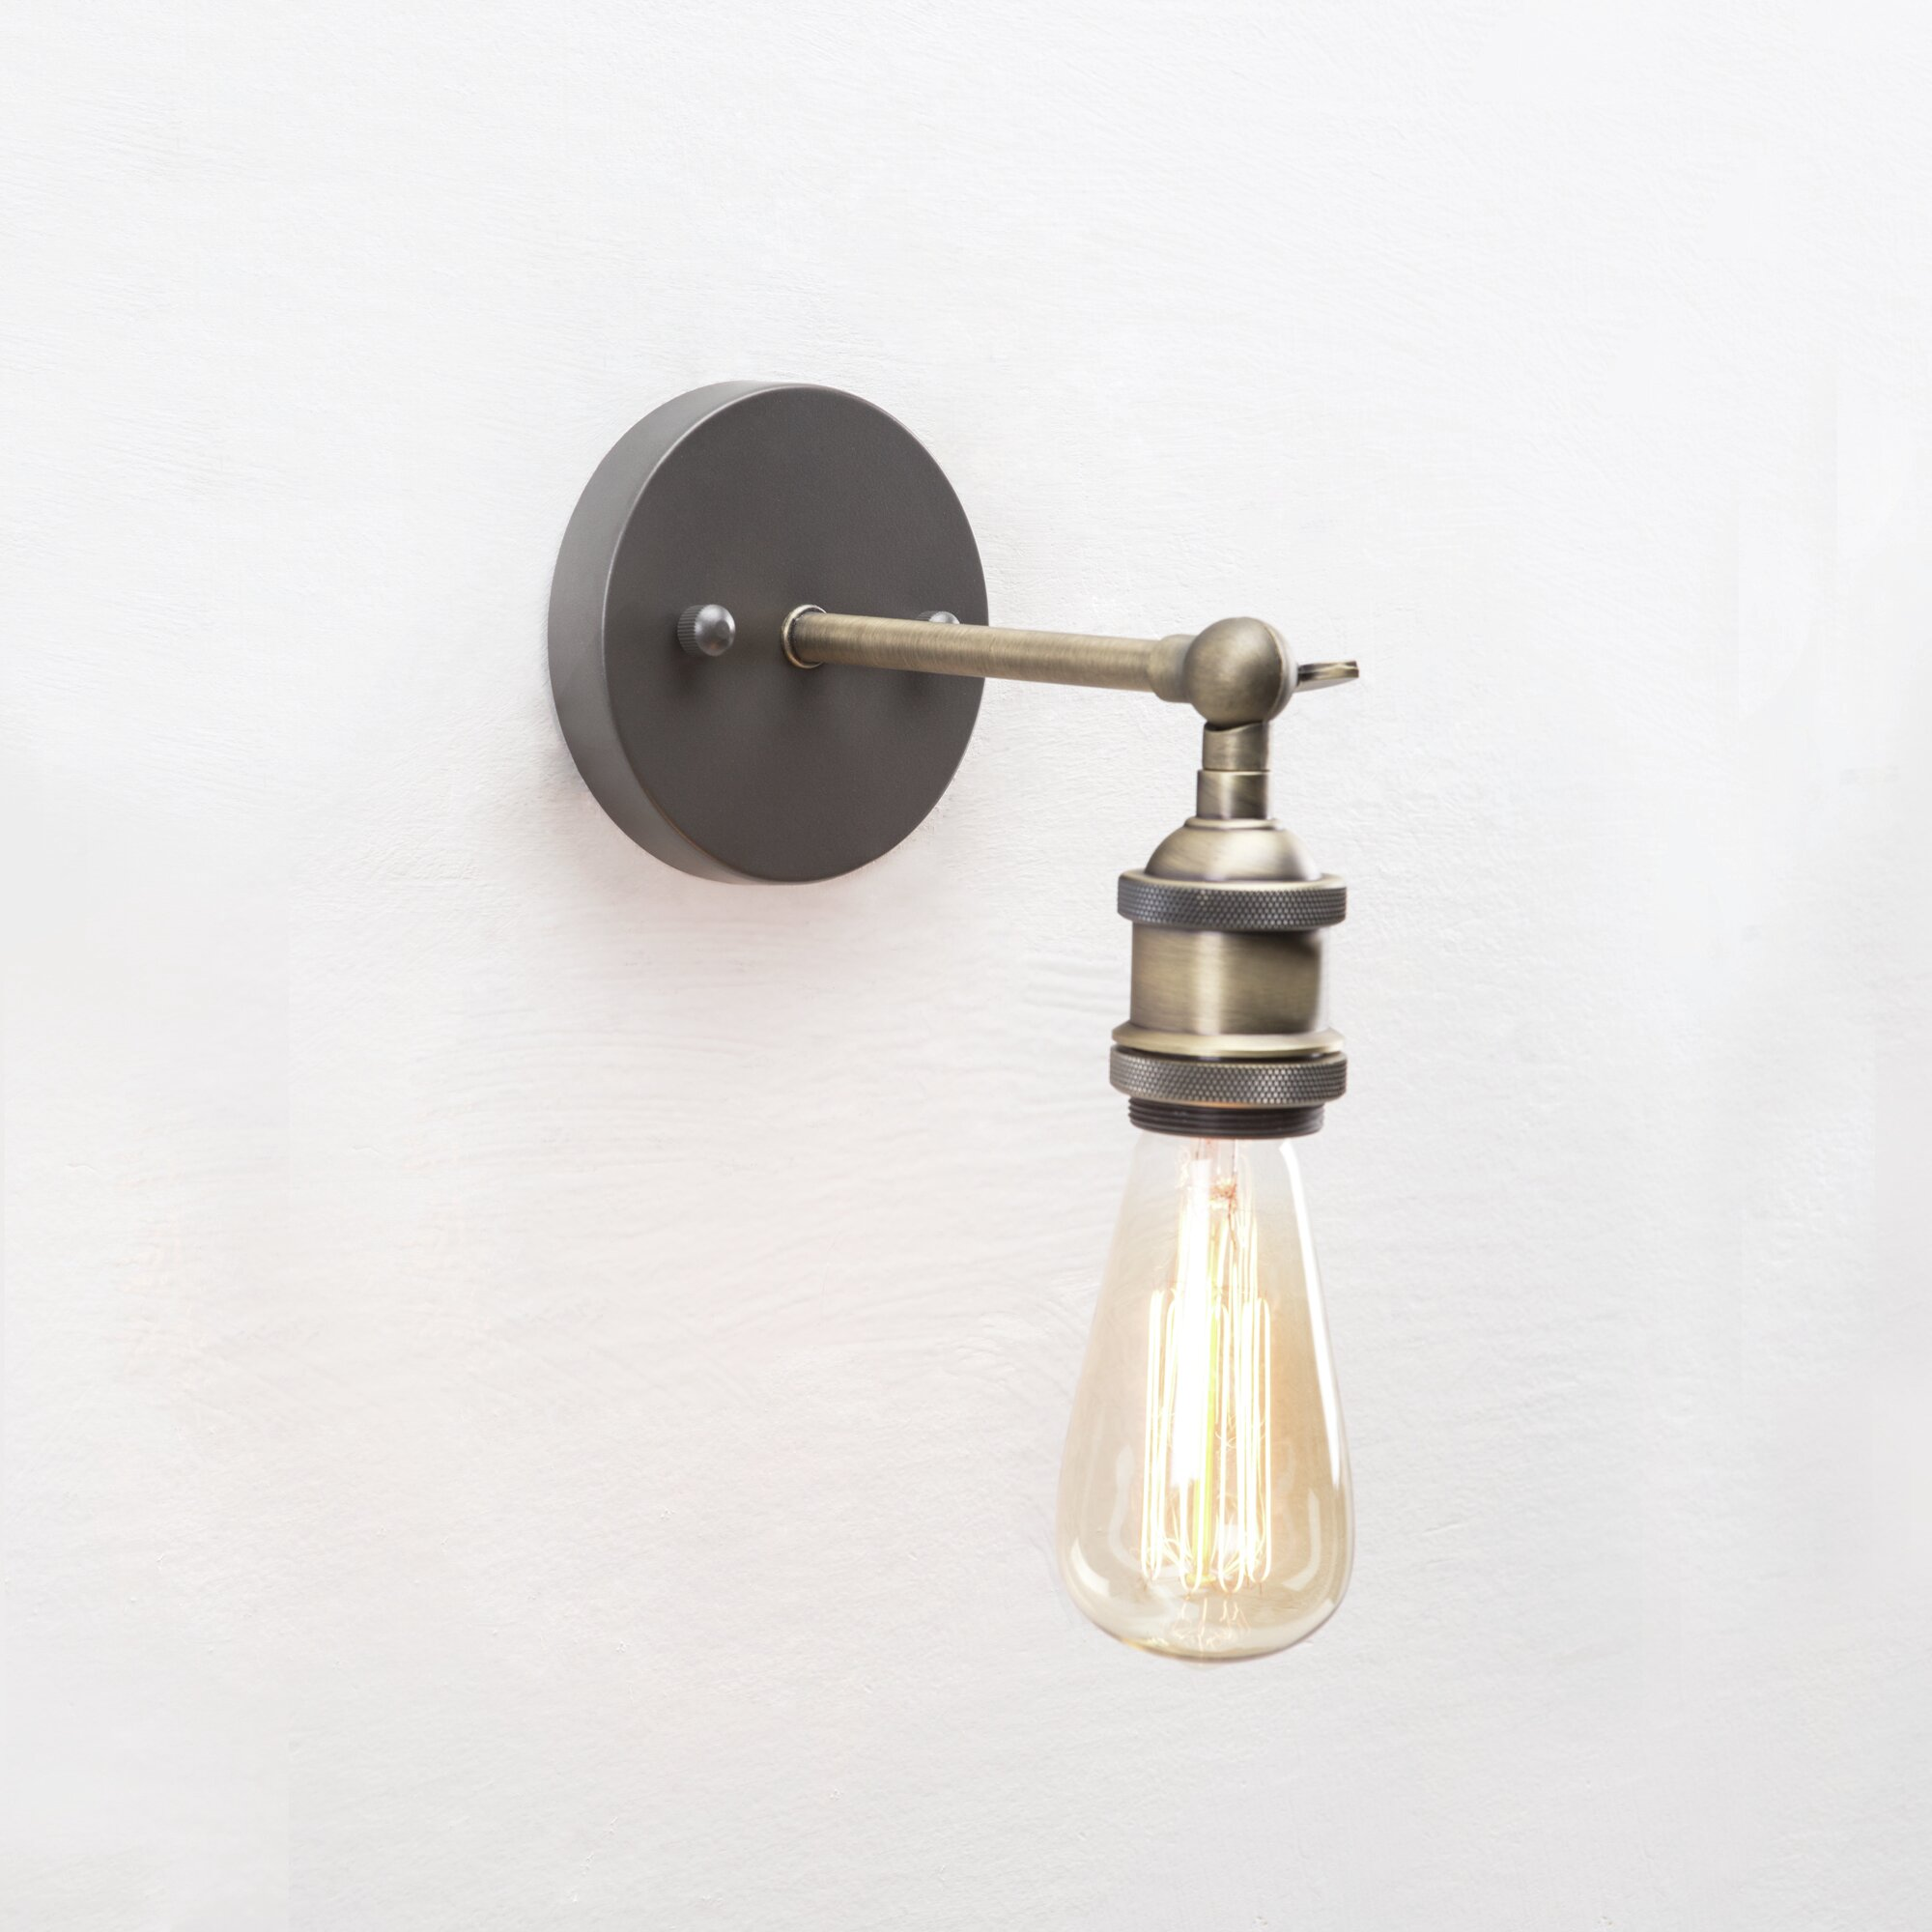 Laurel Foundry Modern Farmhouse Monroe 1 Light Wall Sconce & Reviews